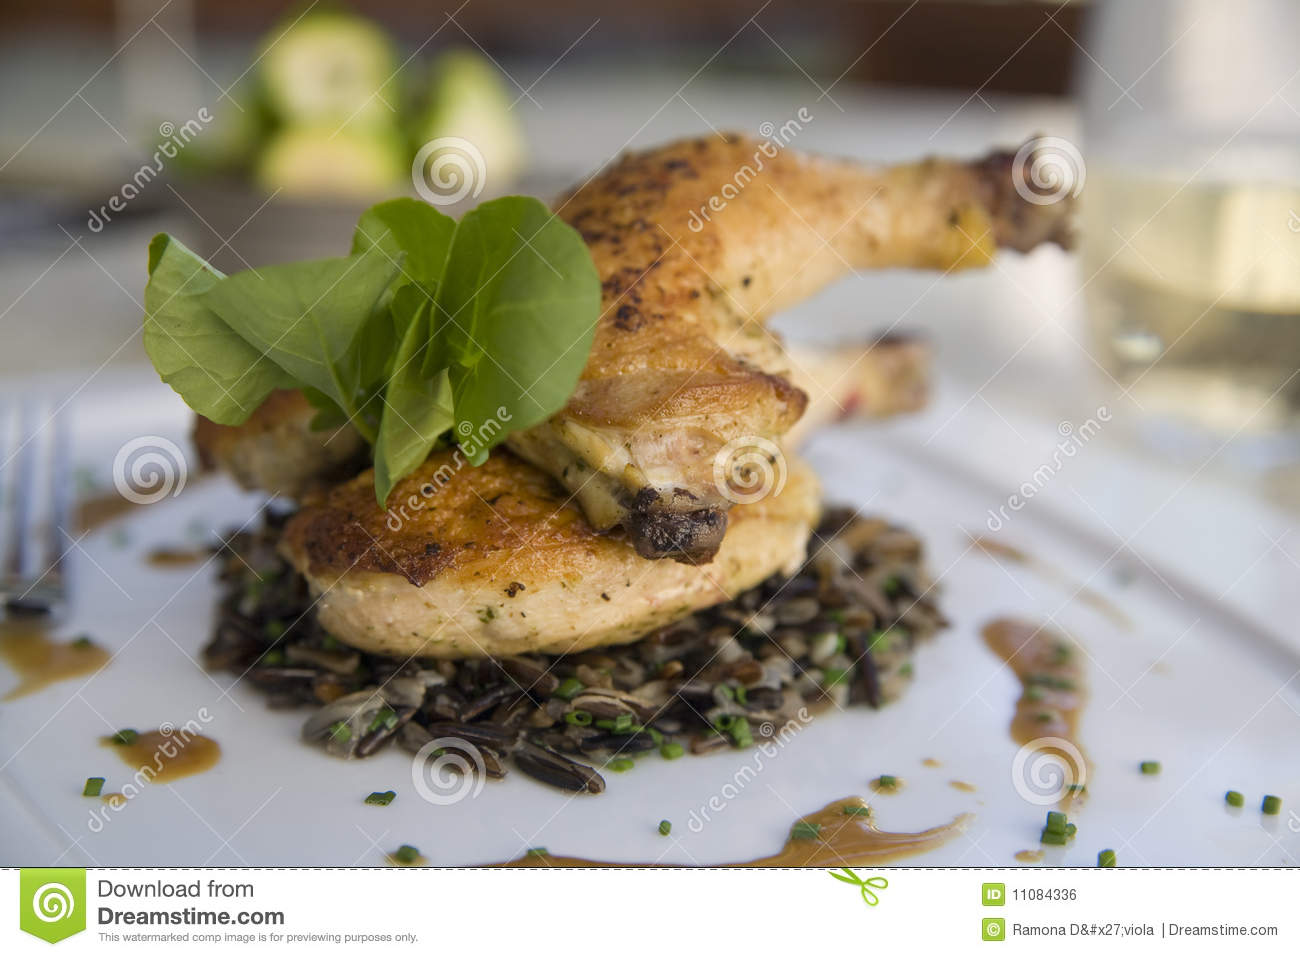 Cornish Game Hen with Wild Rice and Au Jus